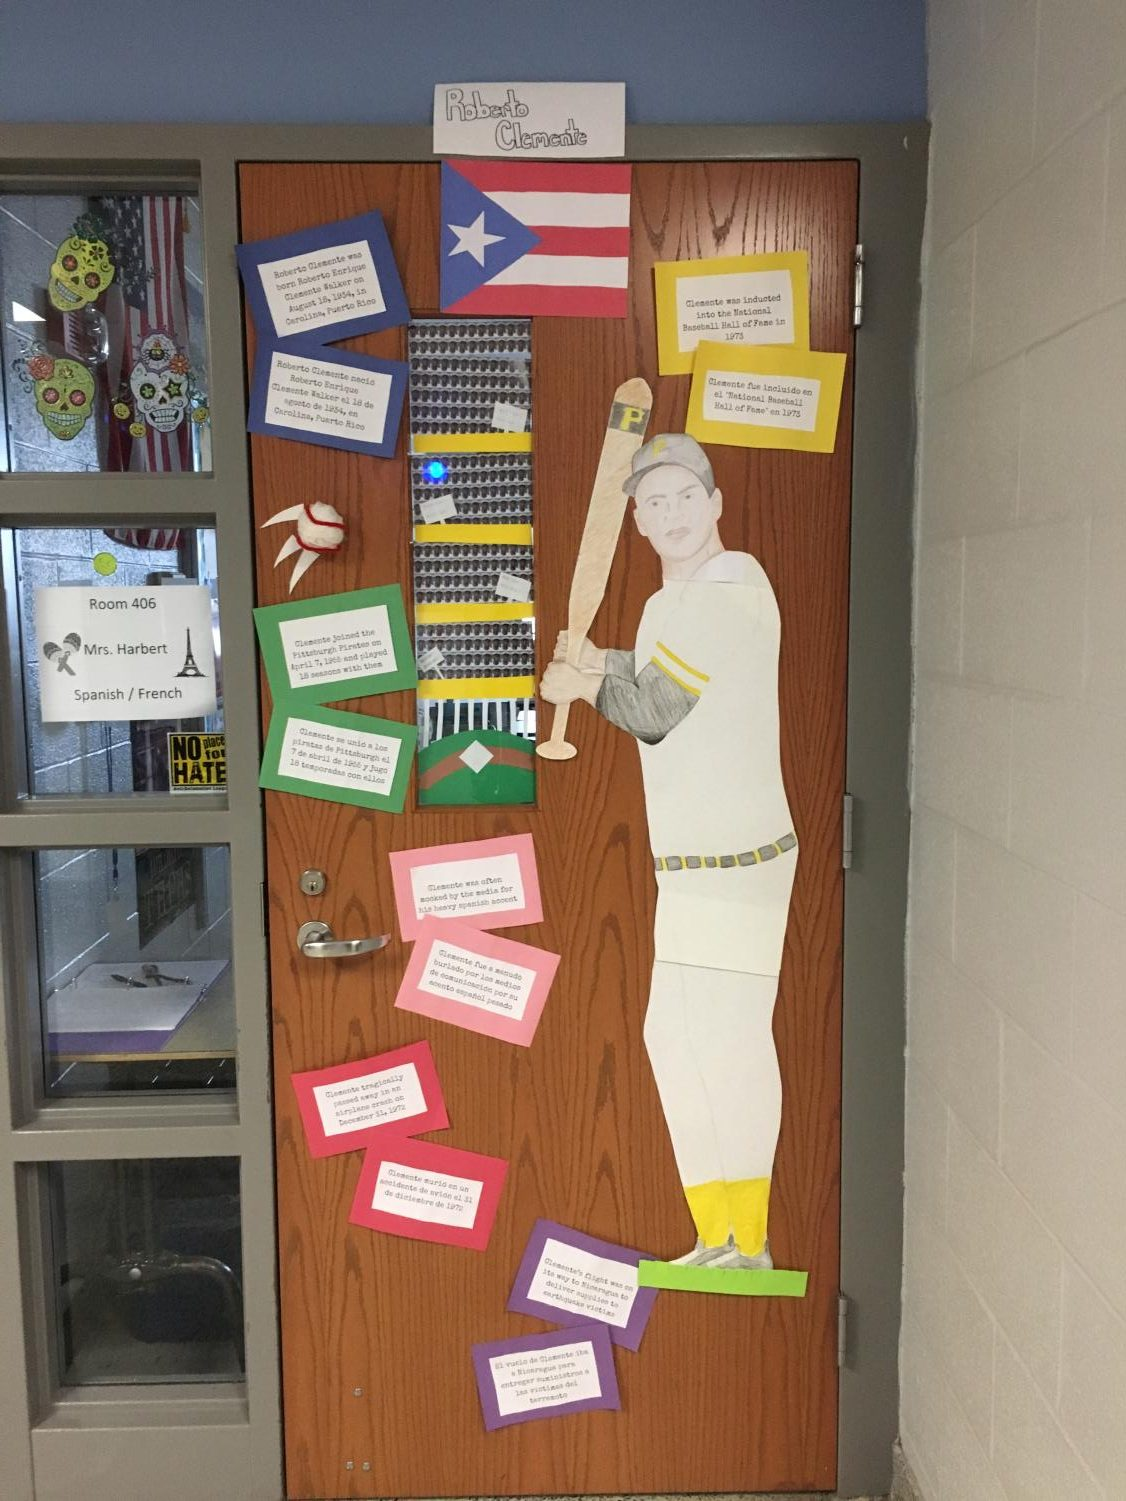 Mrs.+Harbert%27s+homeroom+submitted+the+baseball+player+Roberto+Clemente.++They+incorporated+facts+about+him+and+his+baseball+career.+